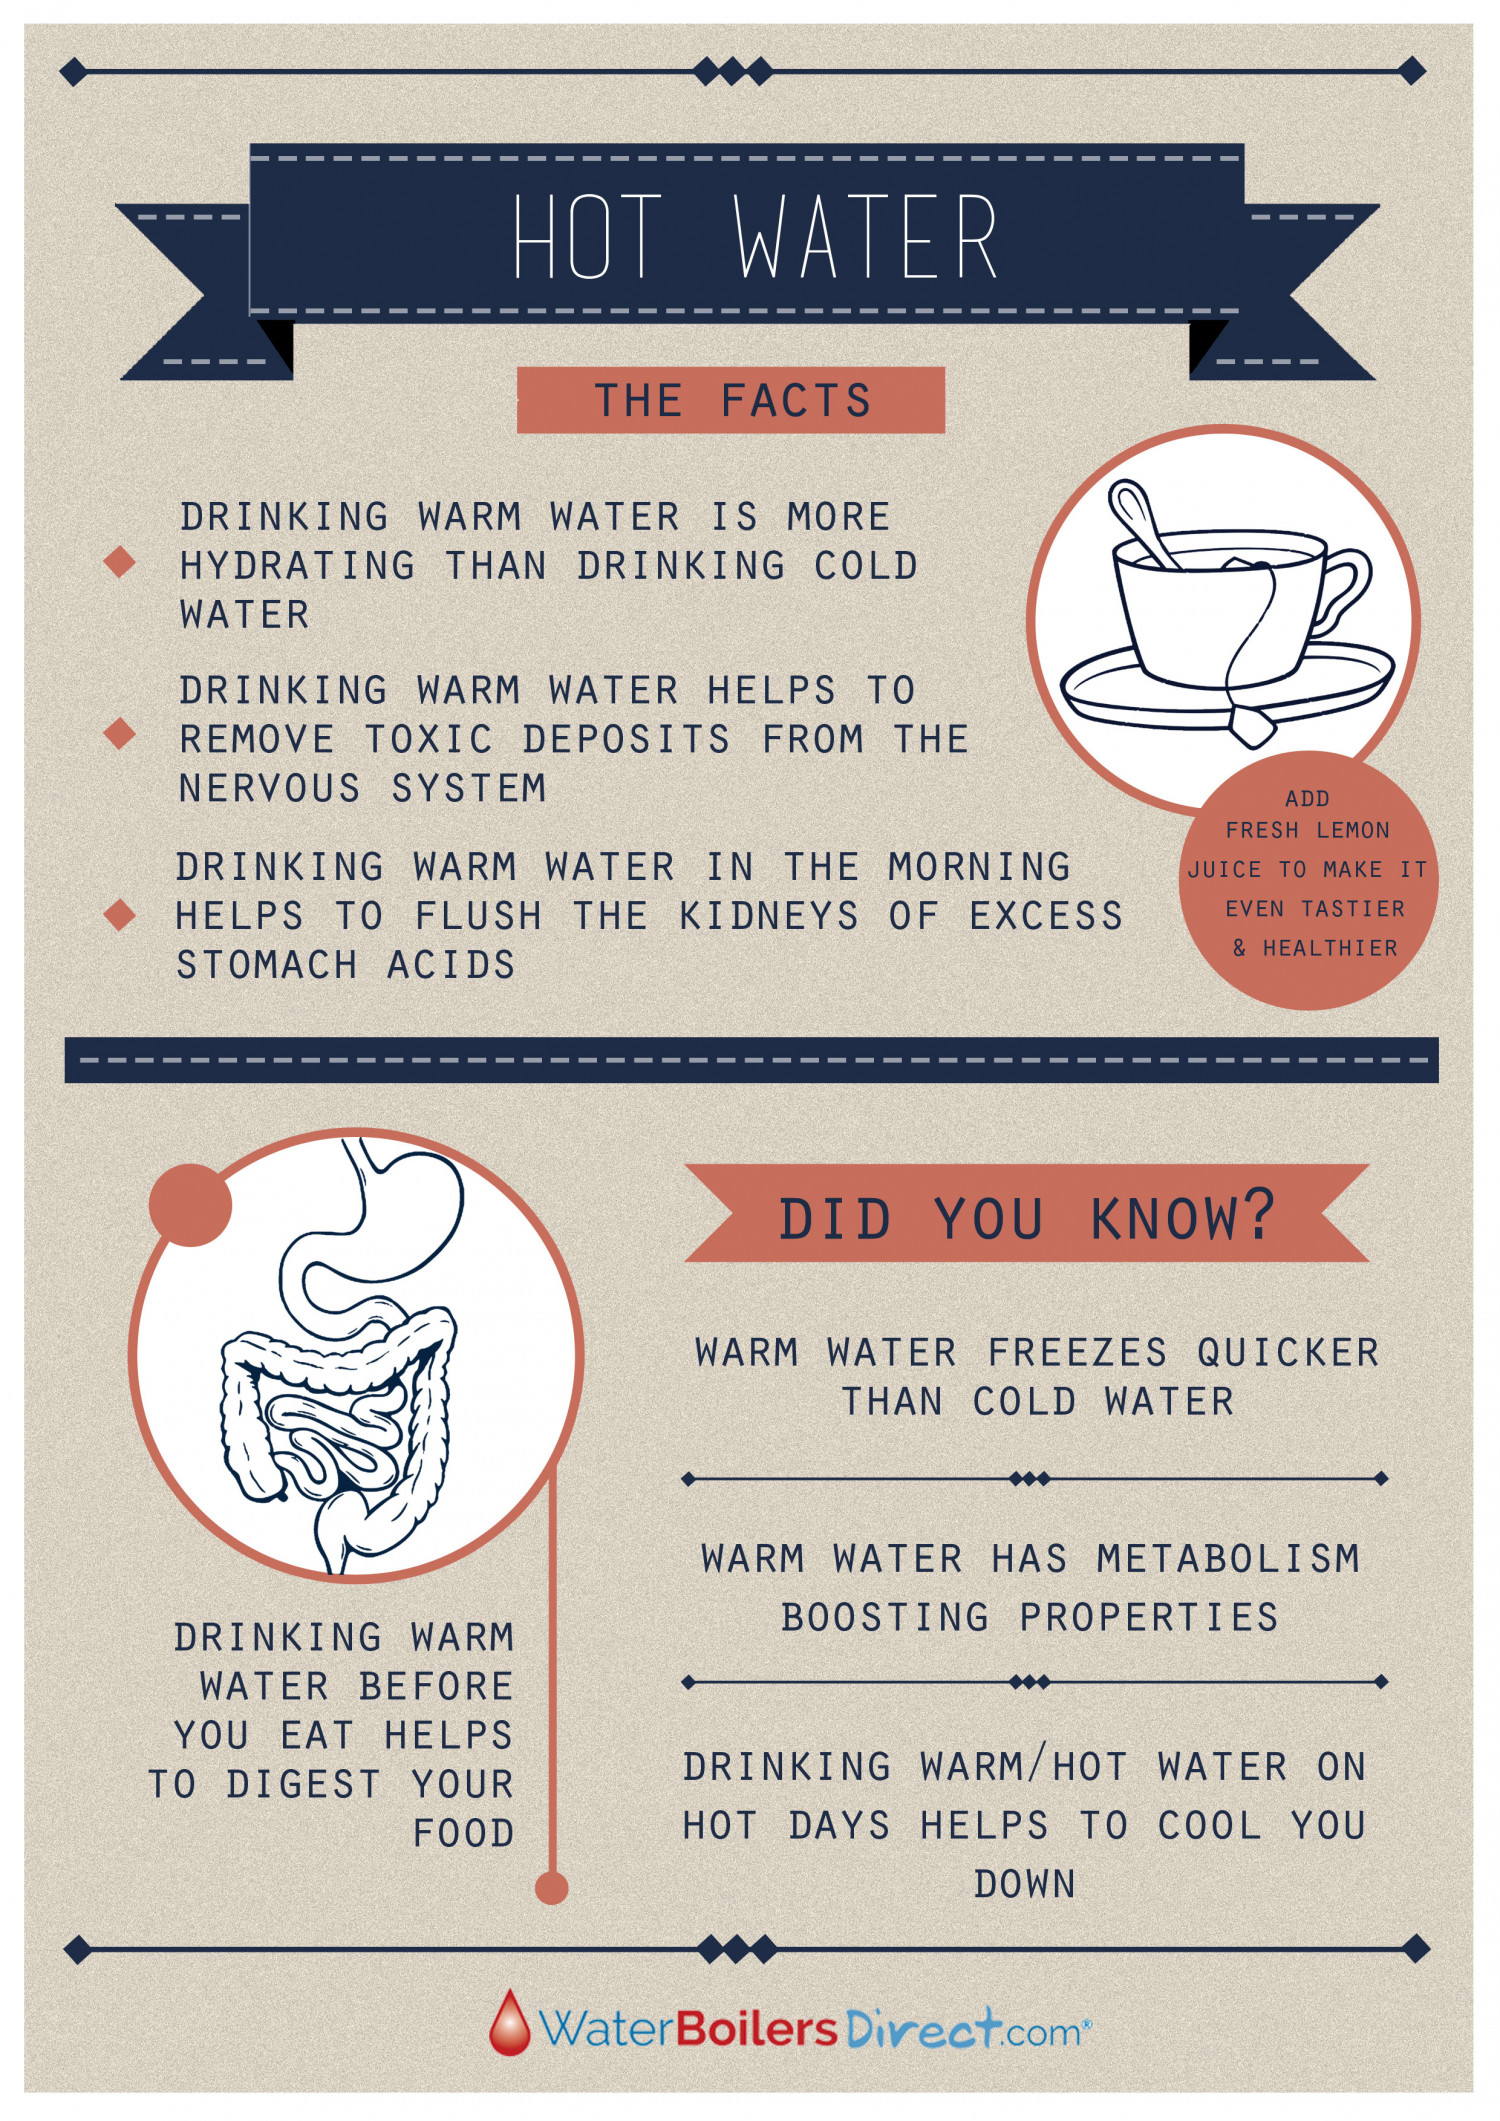 Hot Water Facts Infographic